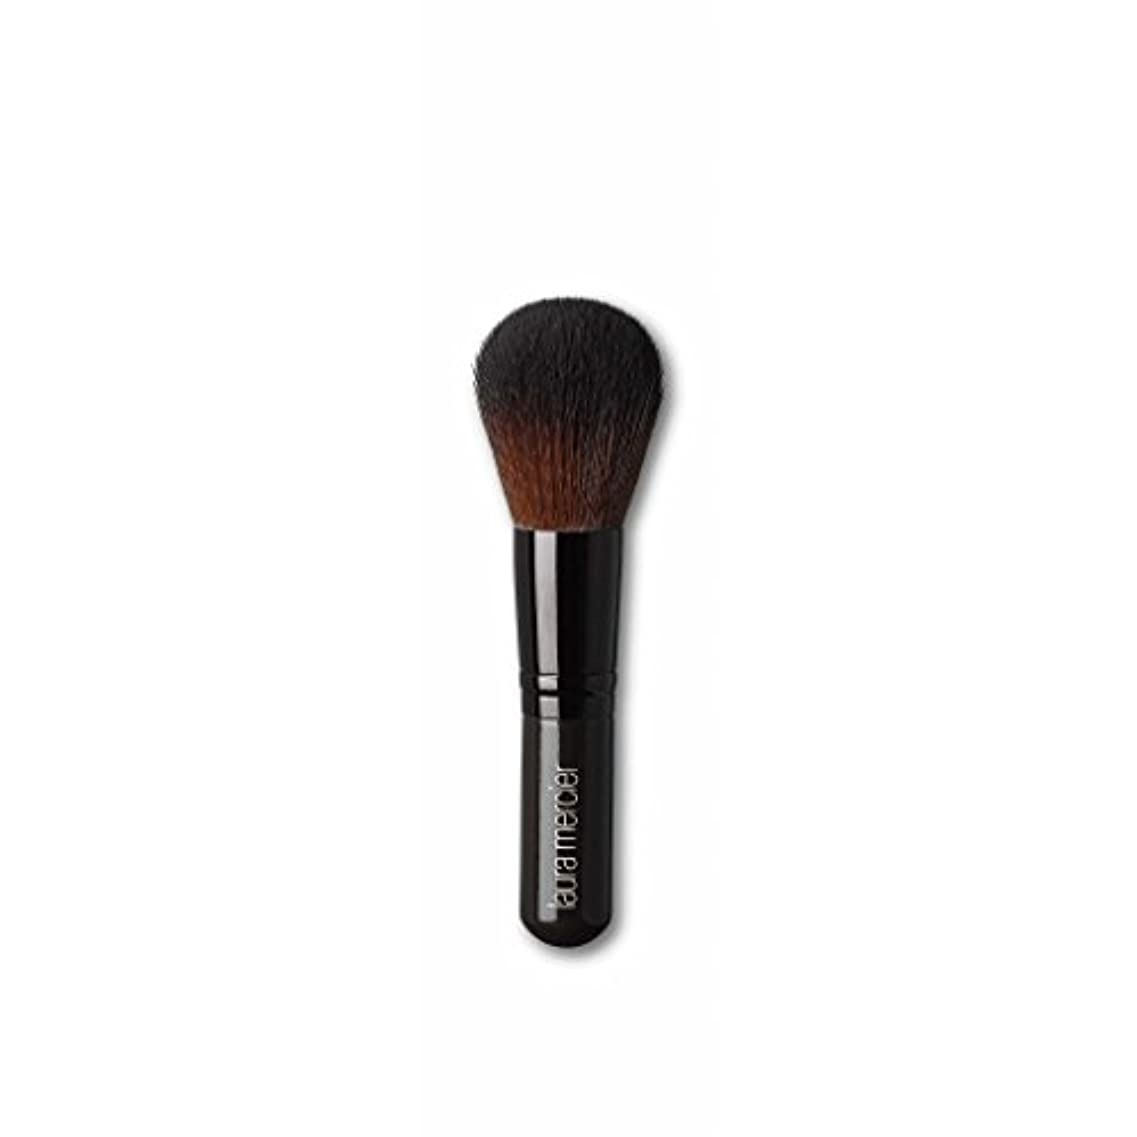 混乱した在庫些細なLaura Mercier Severely Round Head Blending Synthetic Powder Brush